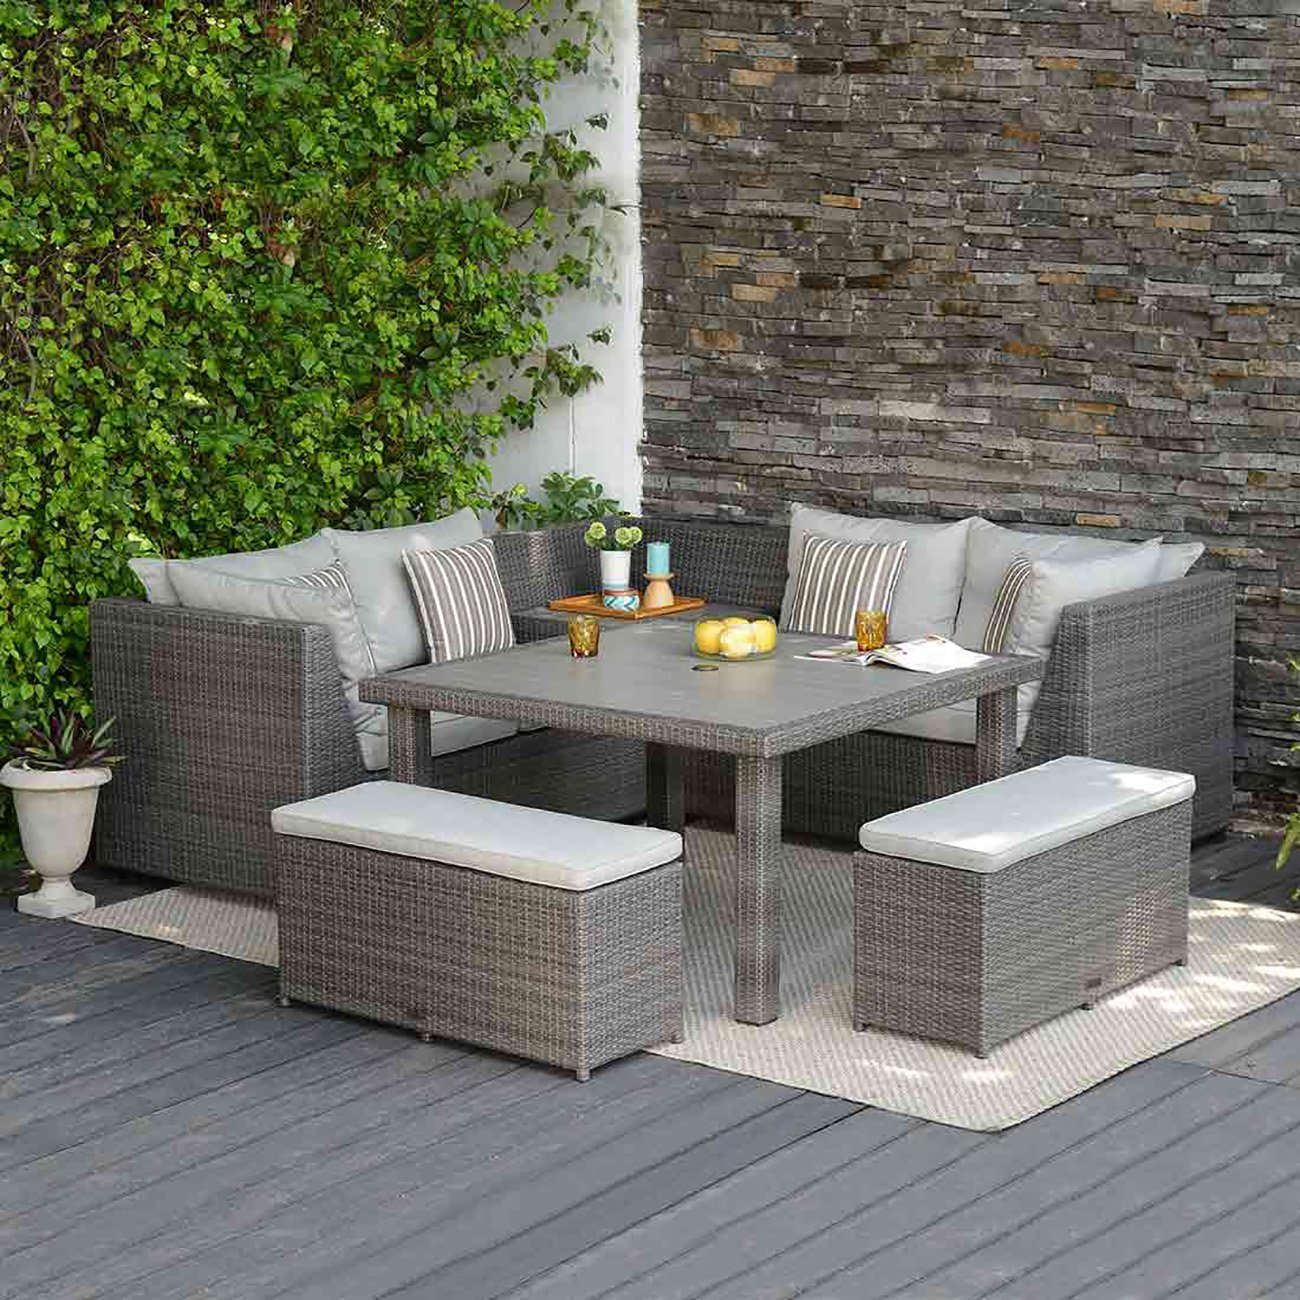 dining lounge outliv andaman lounge ecke polyrattan essgruppe garten loungegruppe loungem bel. Black Bedroom Furniture Sets. Home Design Ideas